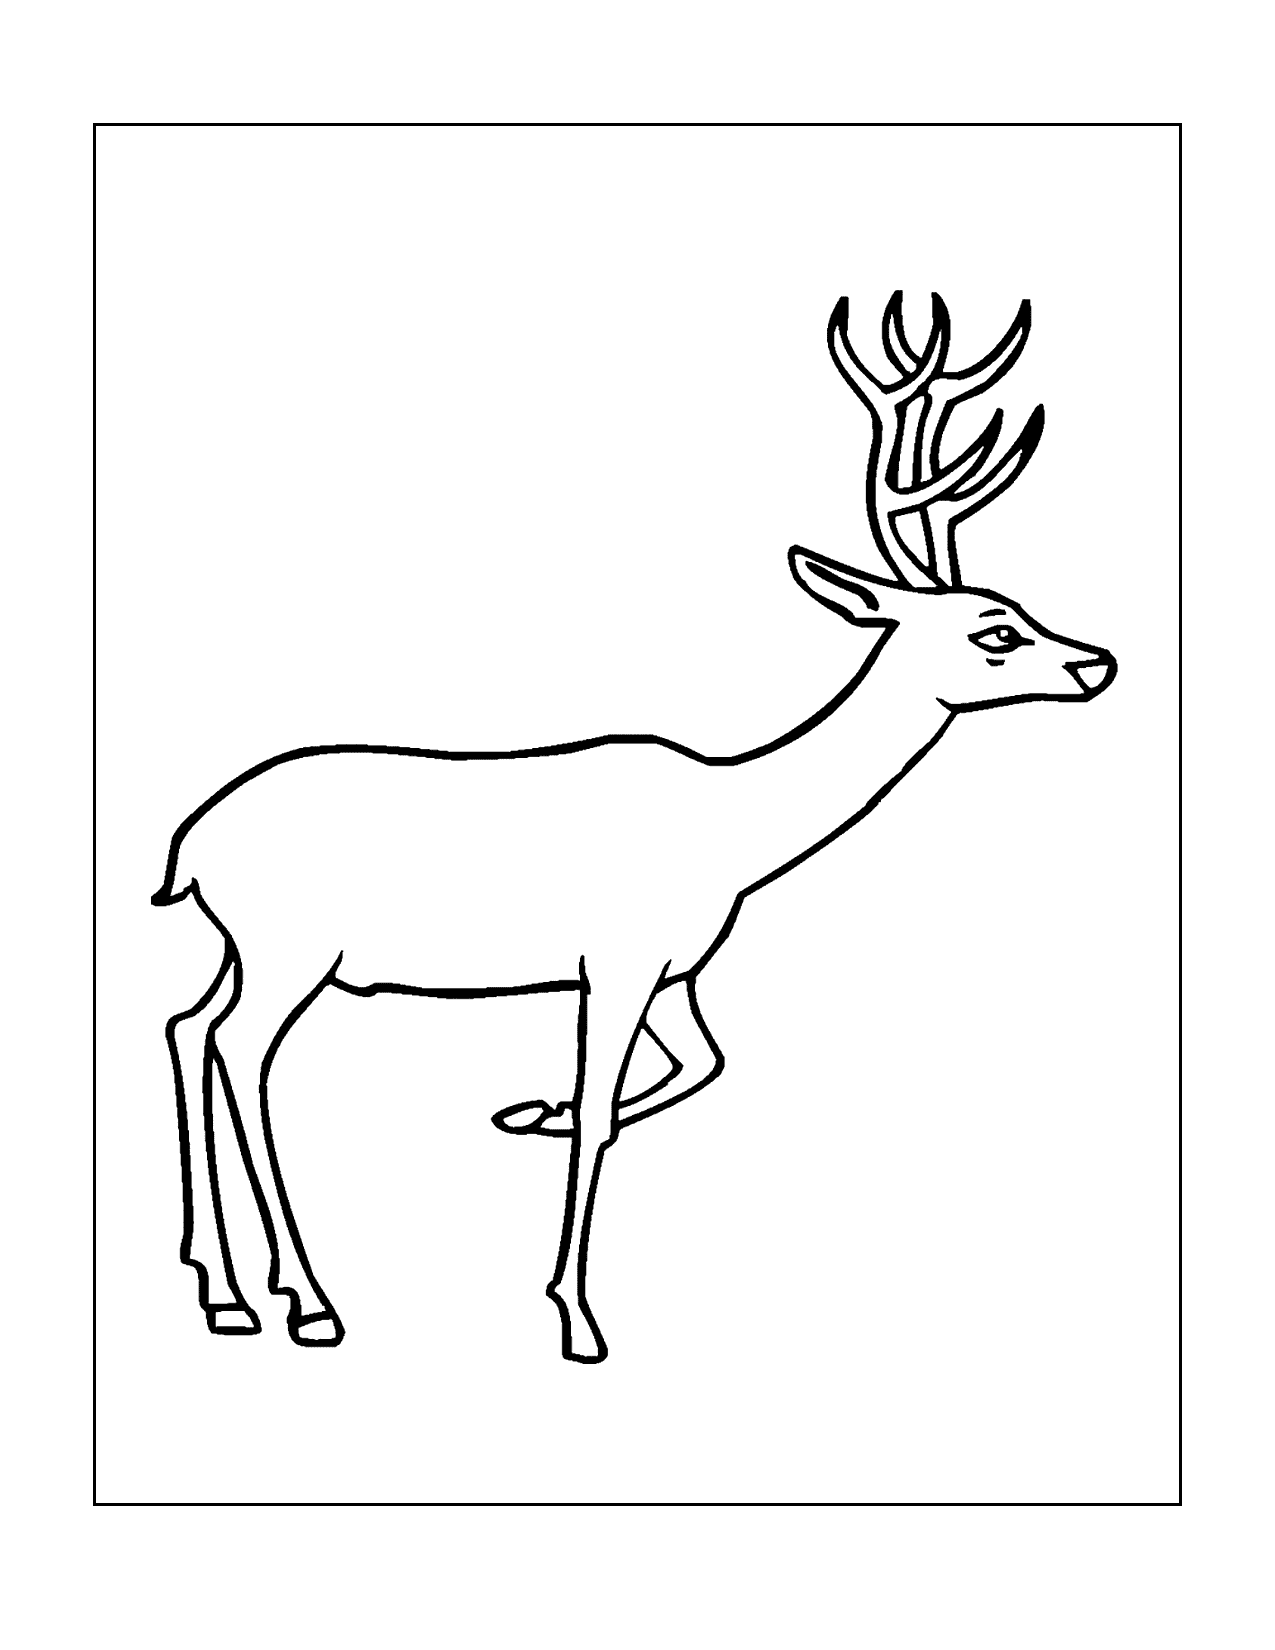 Easy Deer Coloring Pages